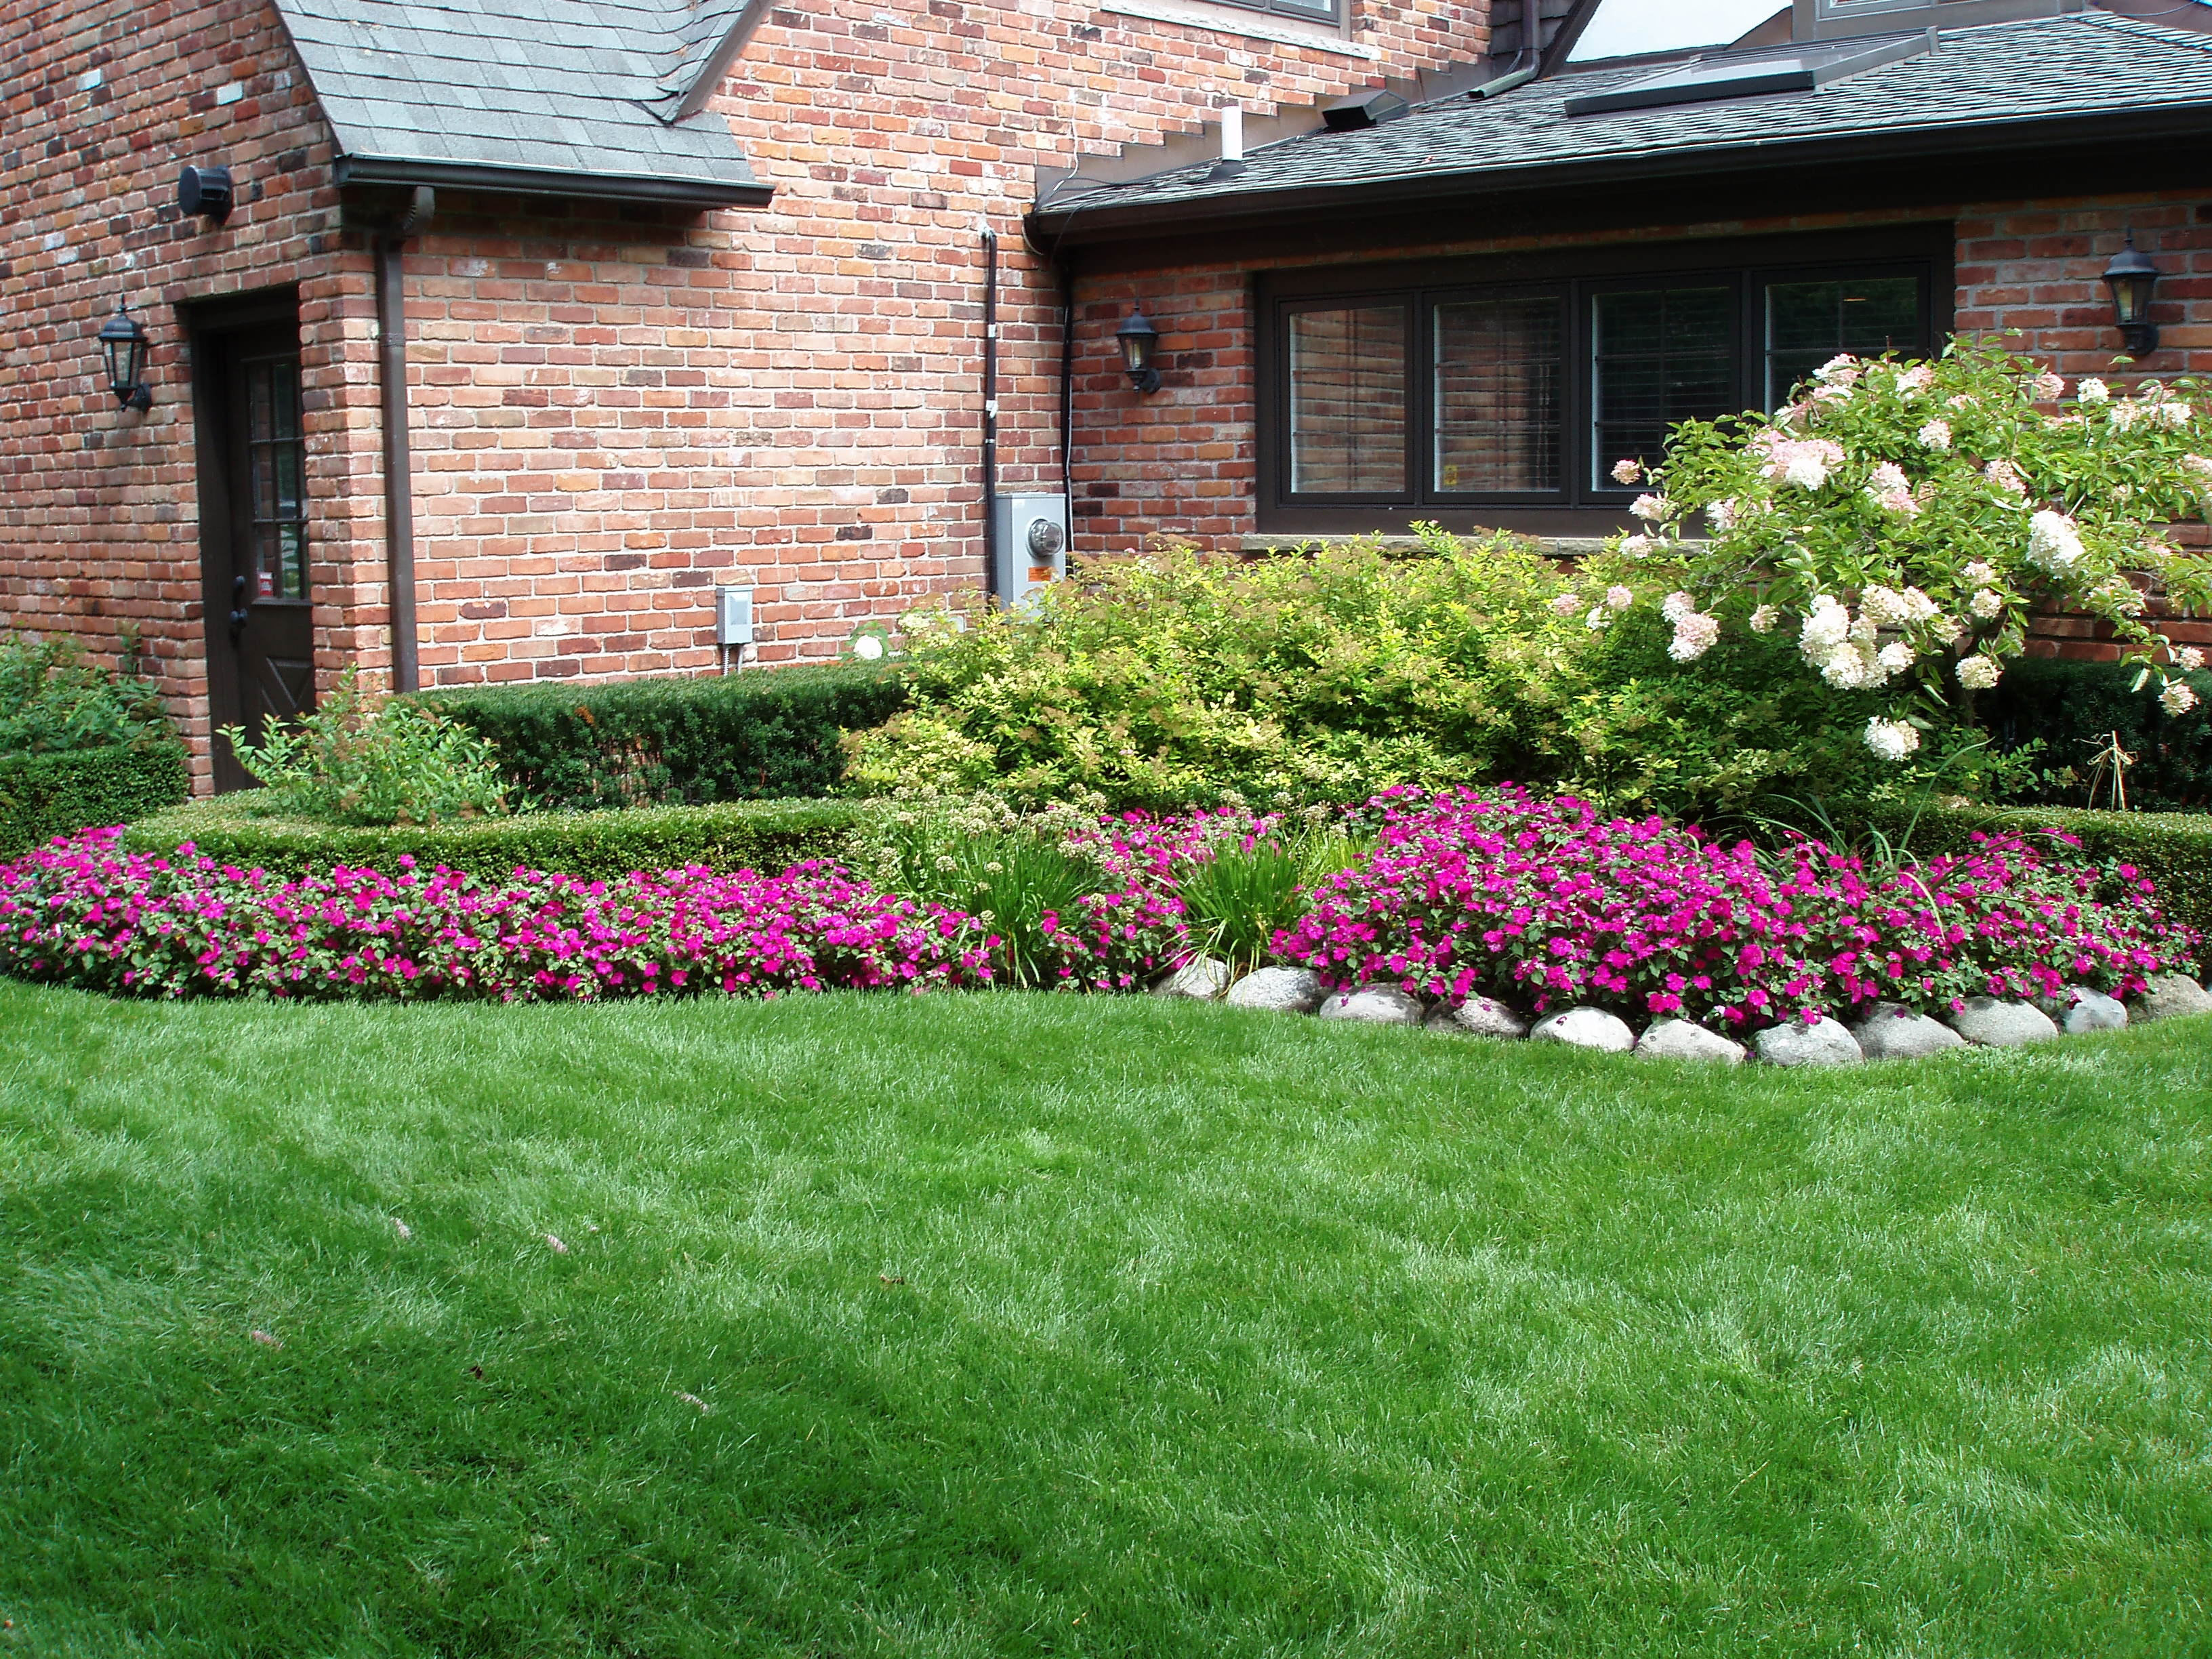 landscaping total lawn care inc full lawn maintenance lawn landscaping and snow removal On flower ideas for yard